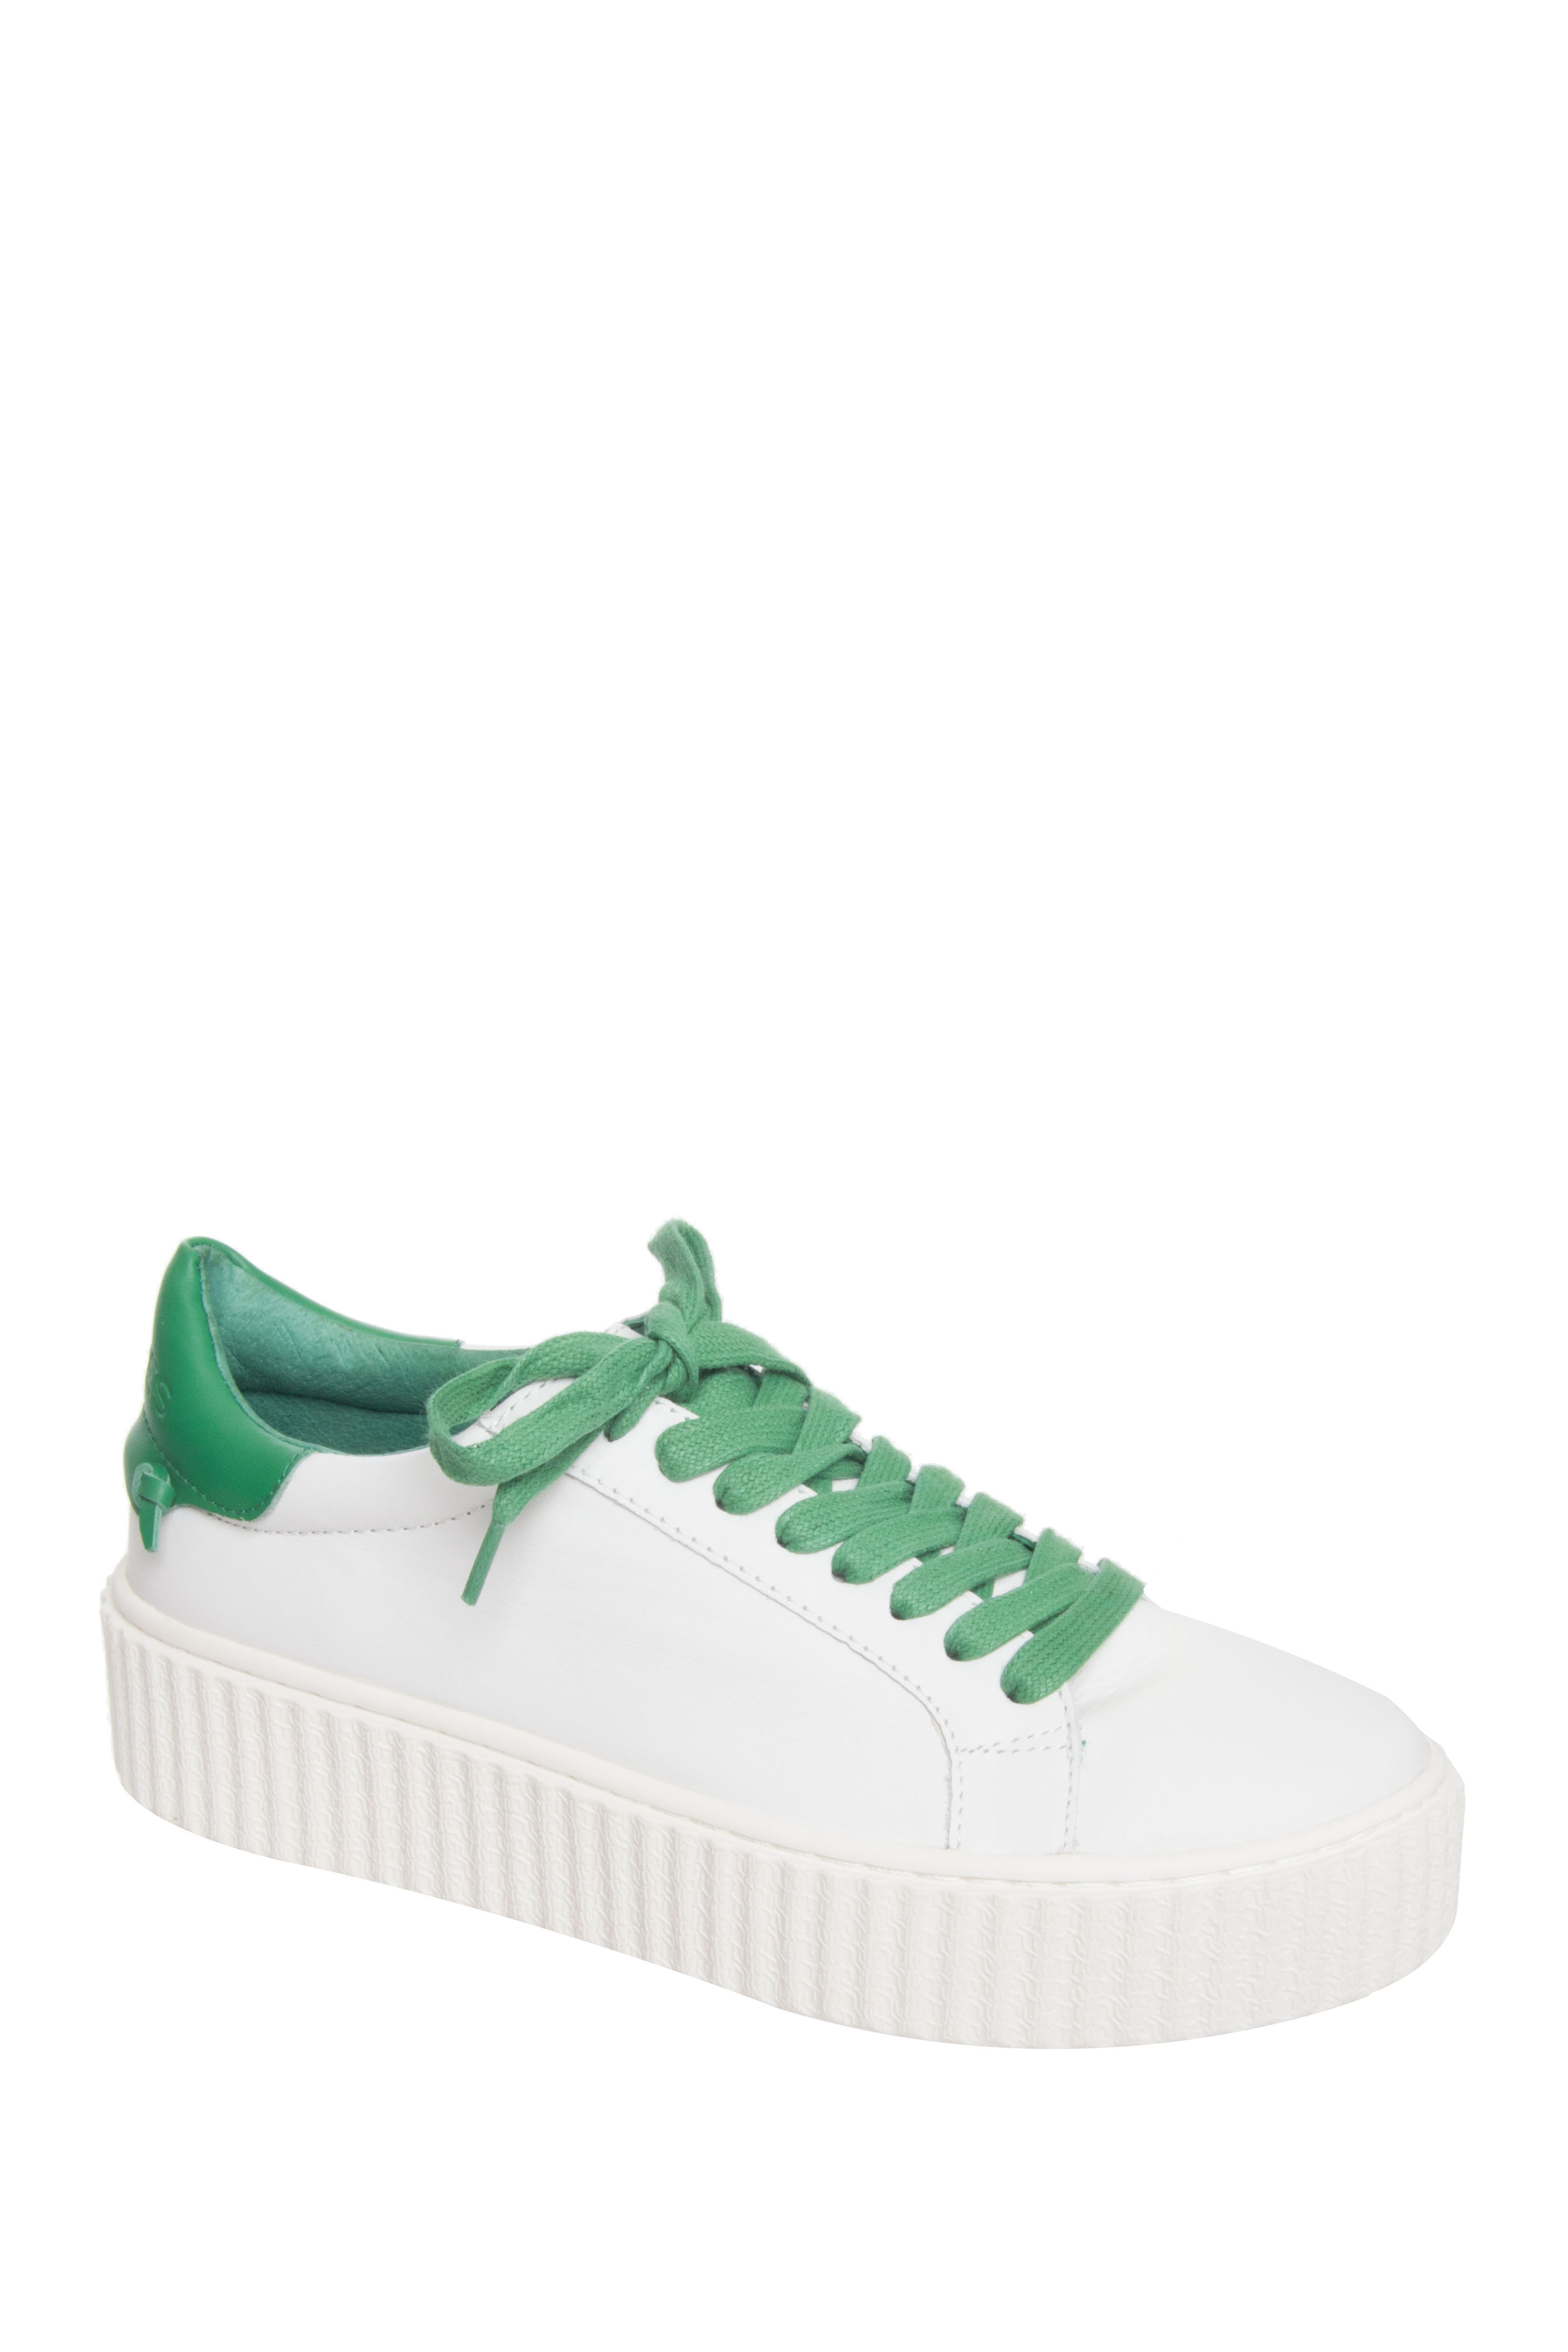 J Slides Parker Low Top Platform Sneakers - White / Green Leather